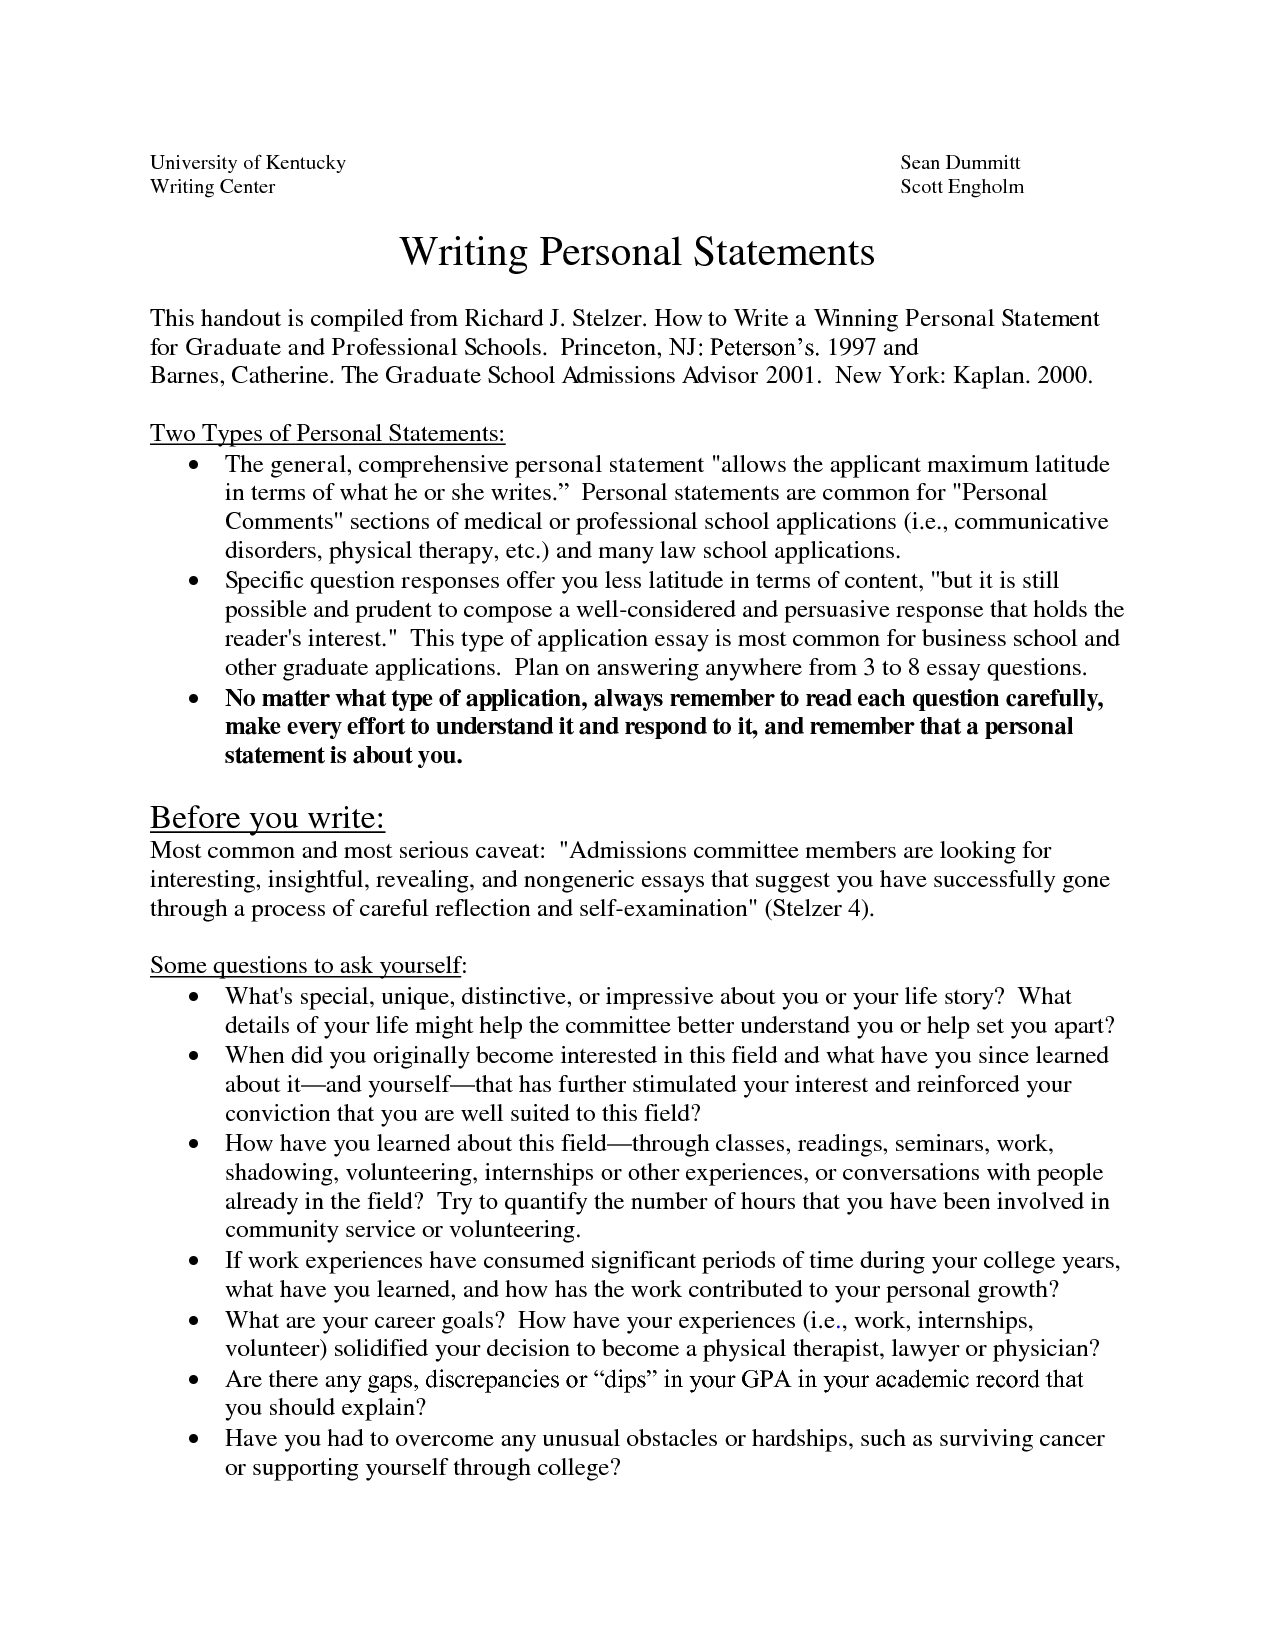 High School Essay Examples  High School Essay Help also Universal Health Care Essay Sample Personal Statements Graduate School  How To Write A  Sample Essay High School